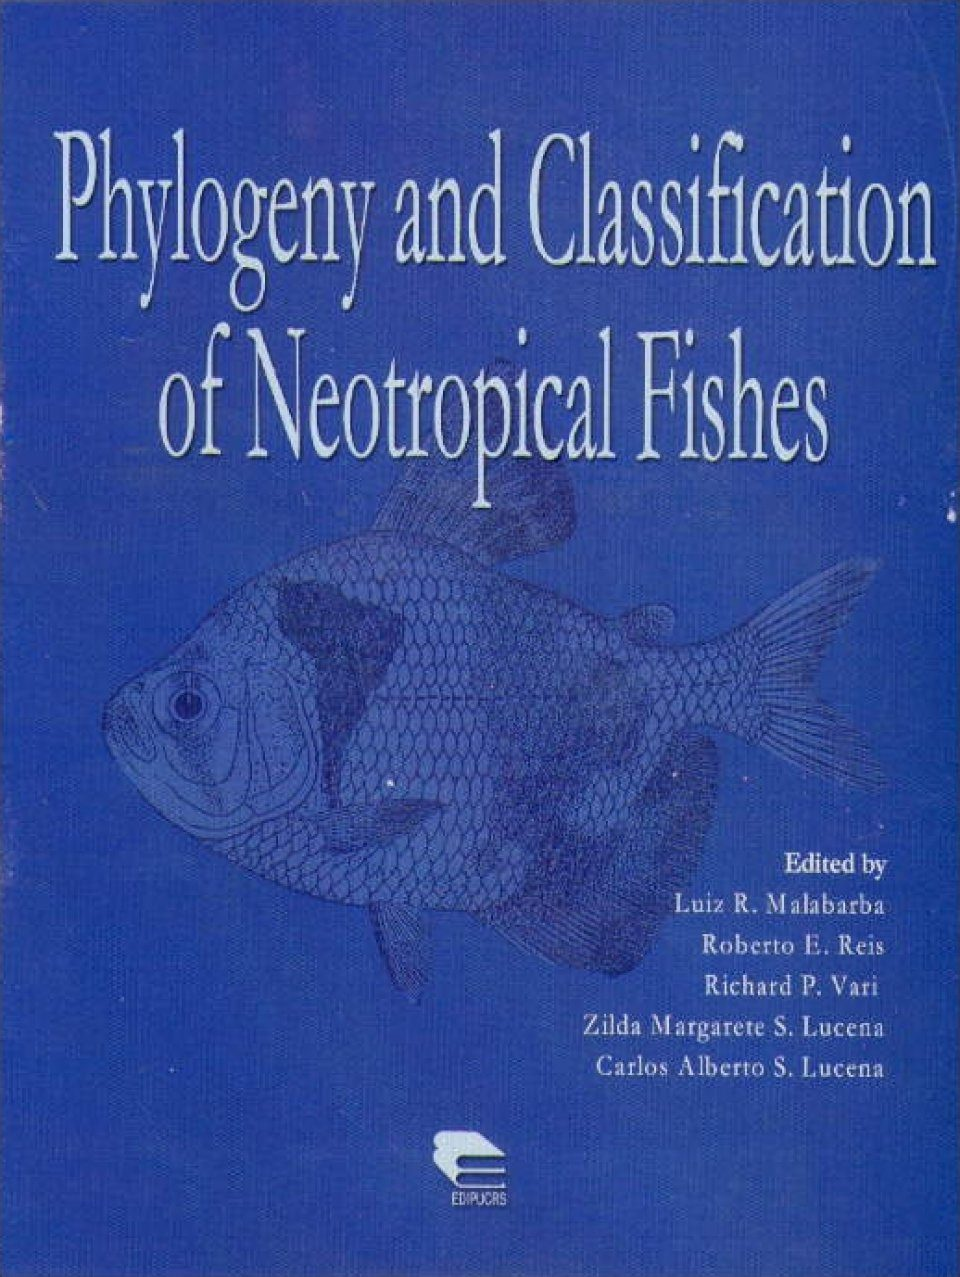 Phylogeny and Classification of Neotropical Fishes